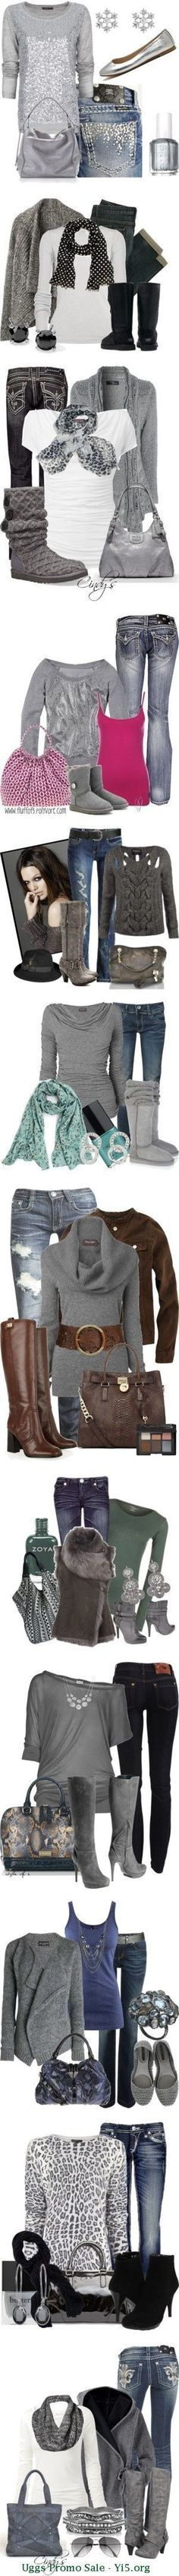 These UGG outfits are so cute and versatile!